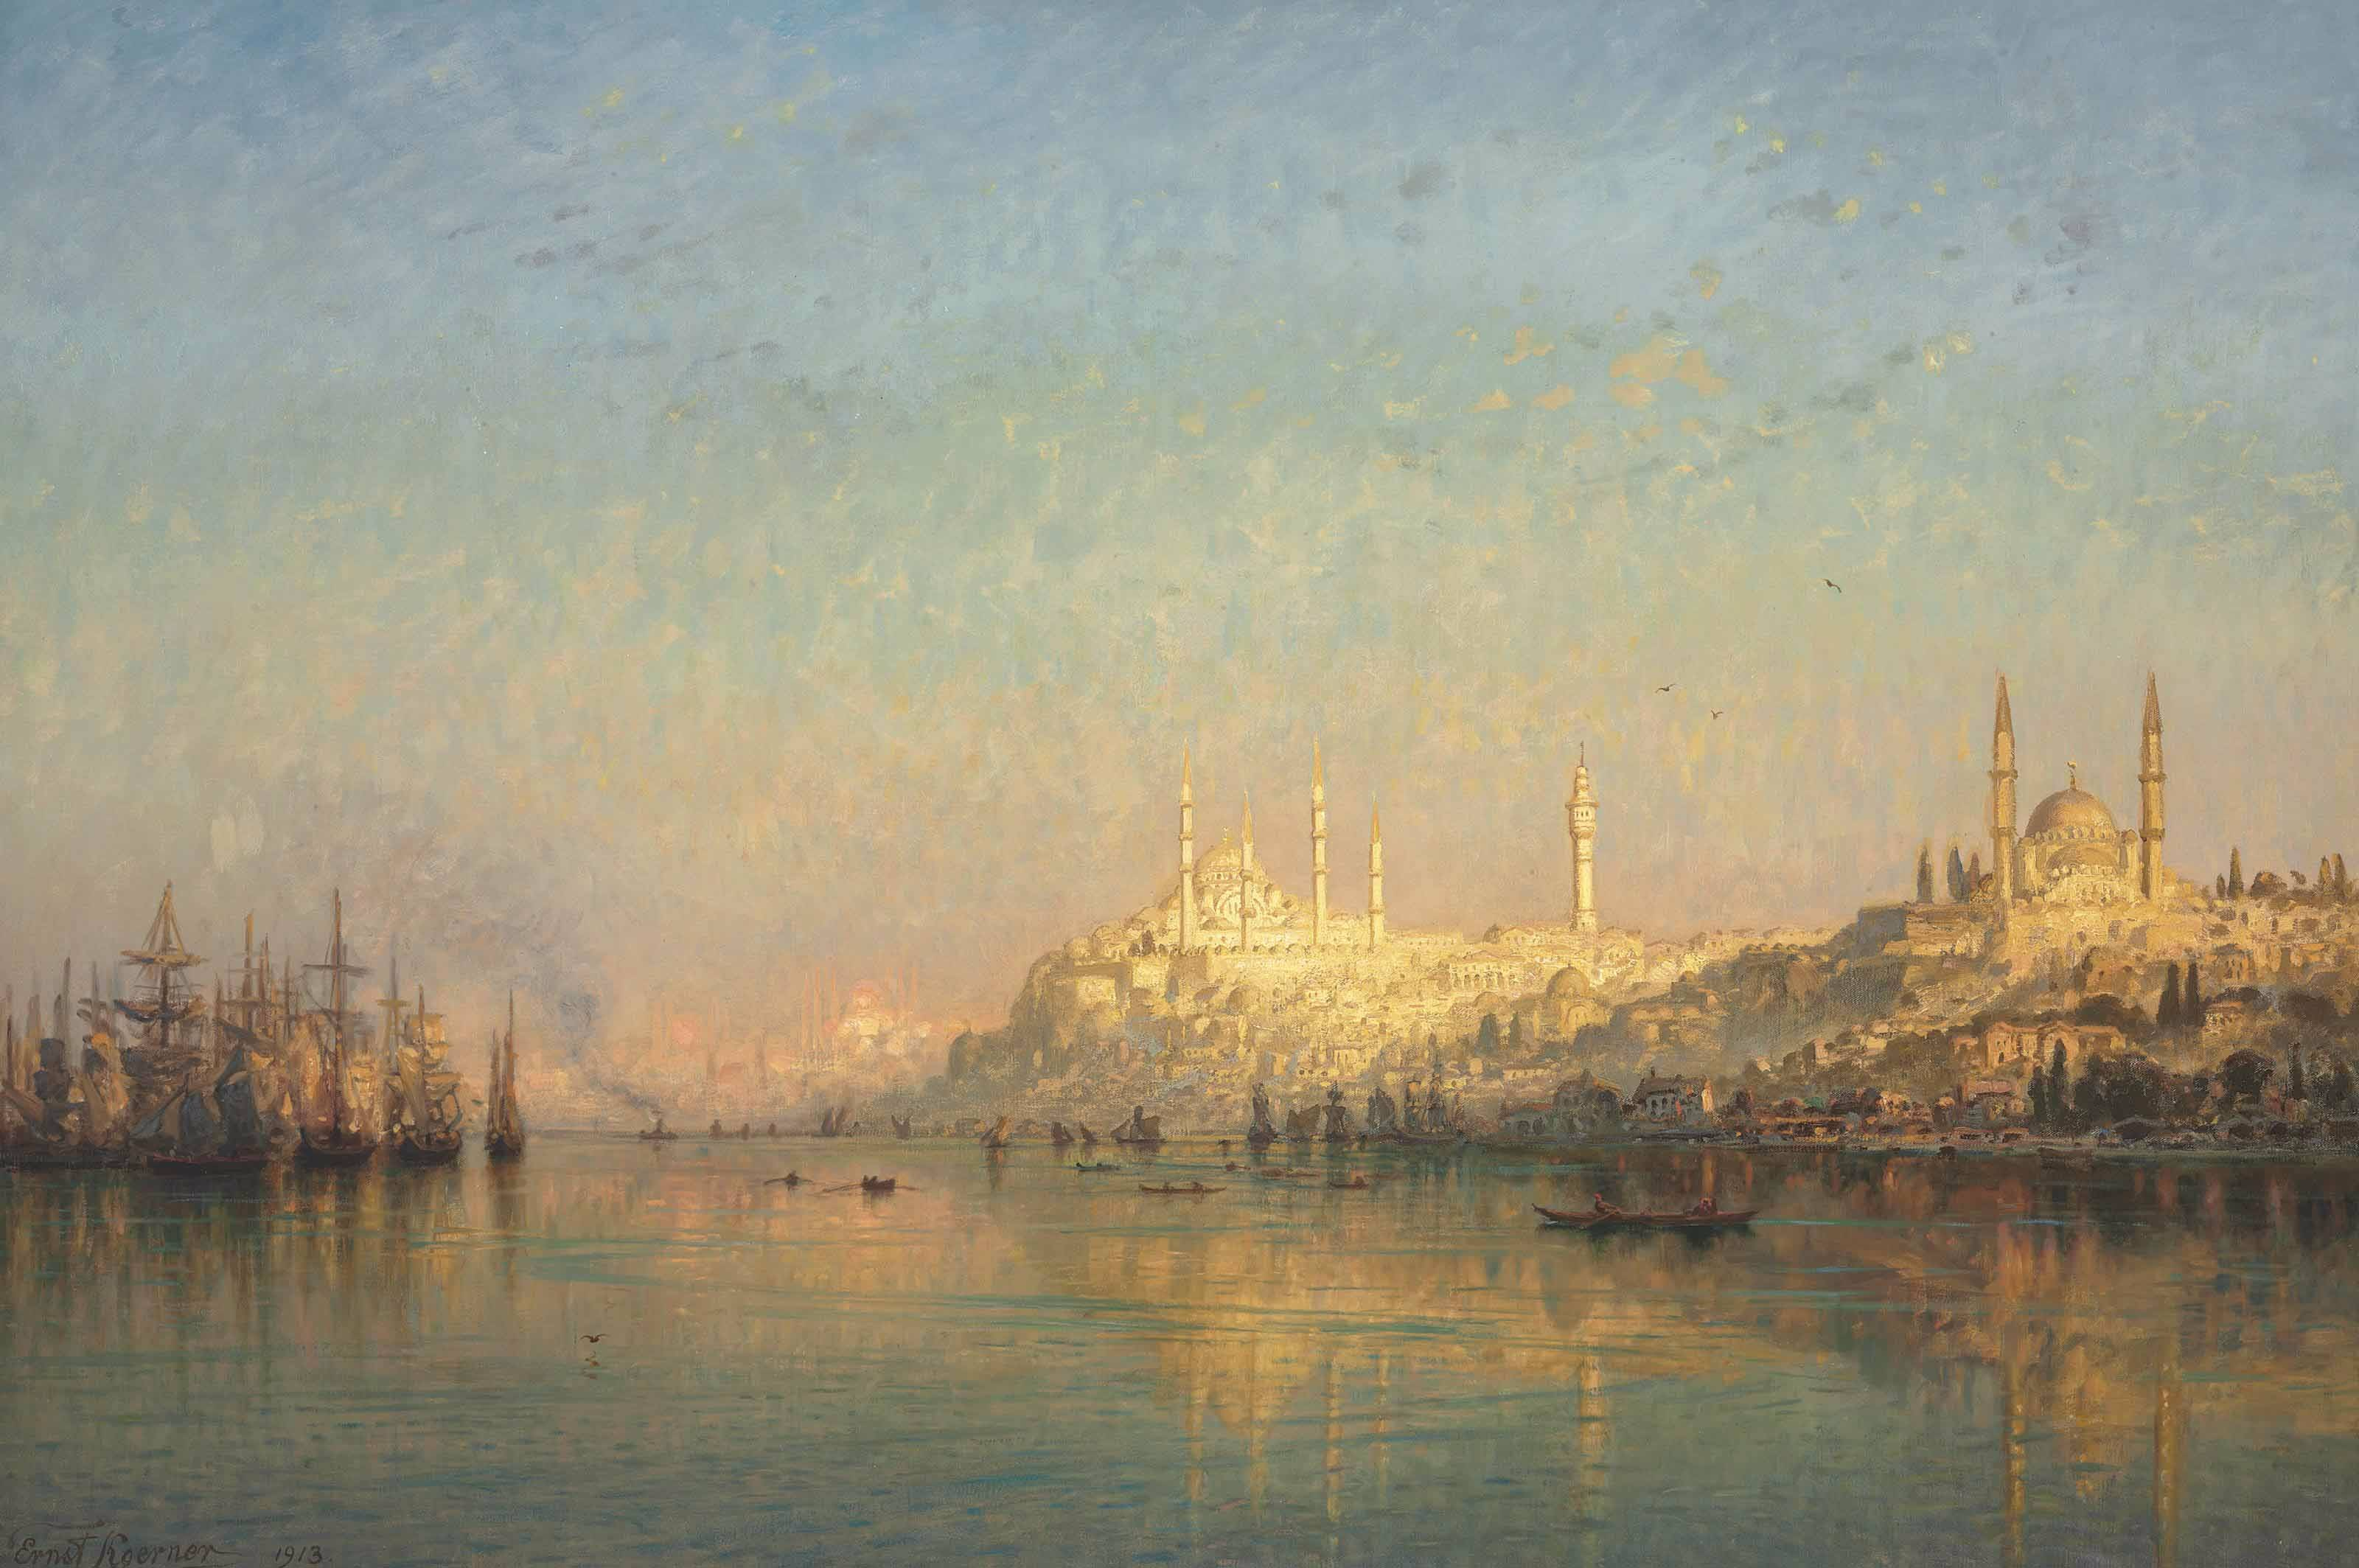 File:View Across The Golden Horn, Hagia Sophia And The